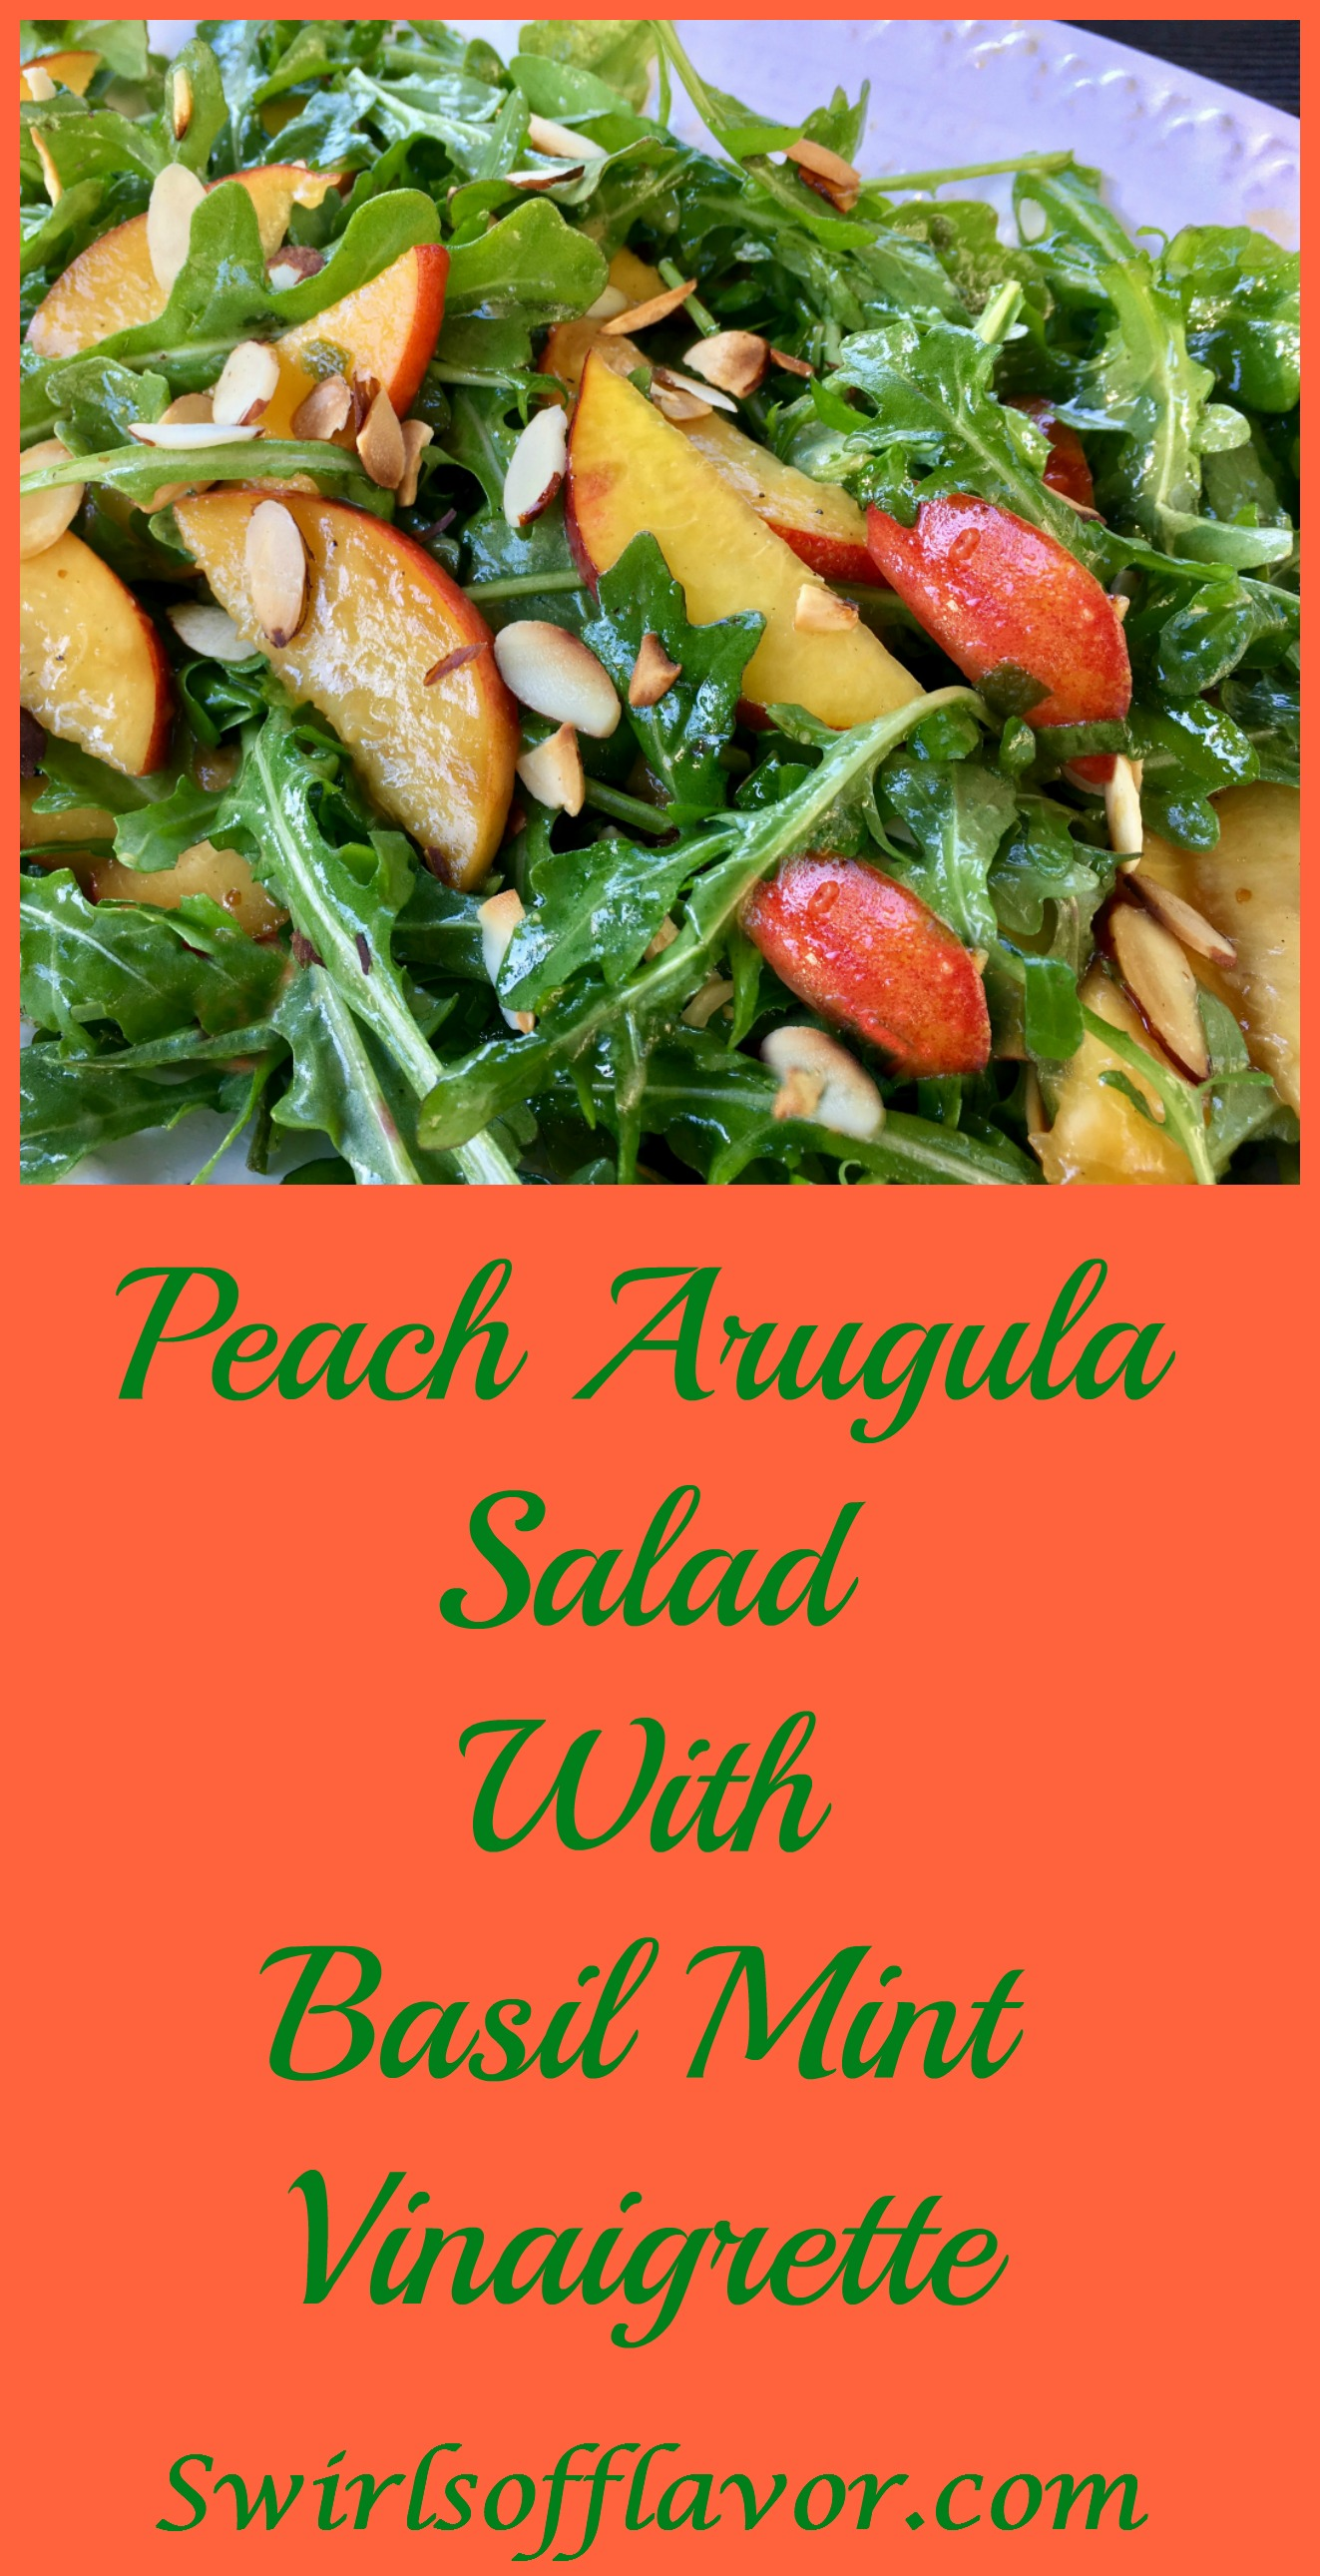 Peach Arugula Salad With Basil Mint Vinaigrette is bursting with summer flavors of juicy peaches, fragrant basil and fresh mint! peach | almonds | salad | arugula | basil | mint | vinaigrette | easy recipe | #swirlsofflavor | summer salad